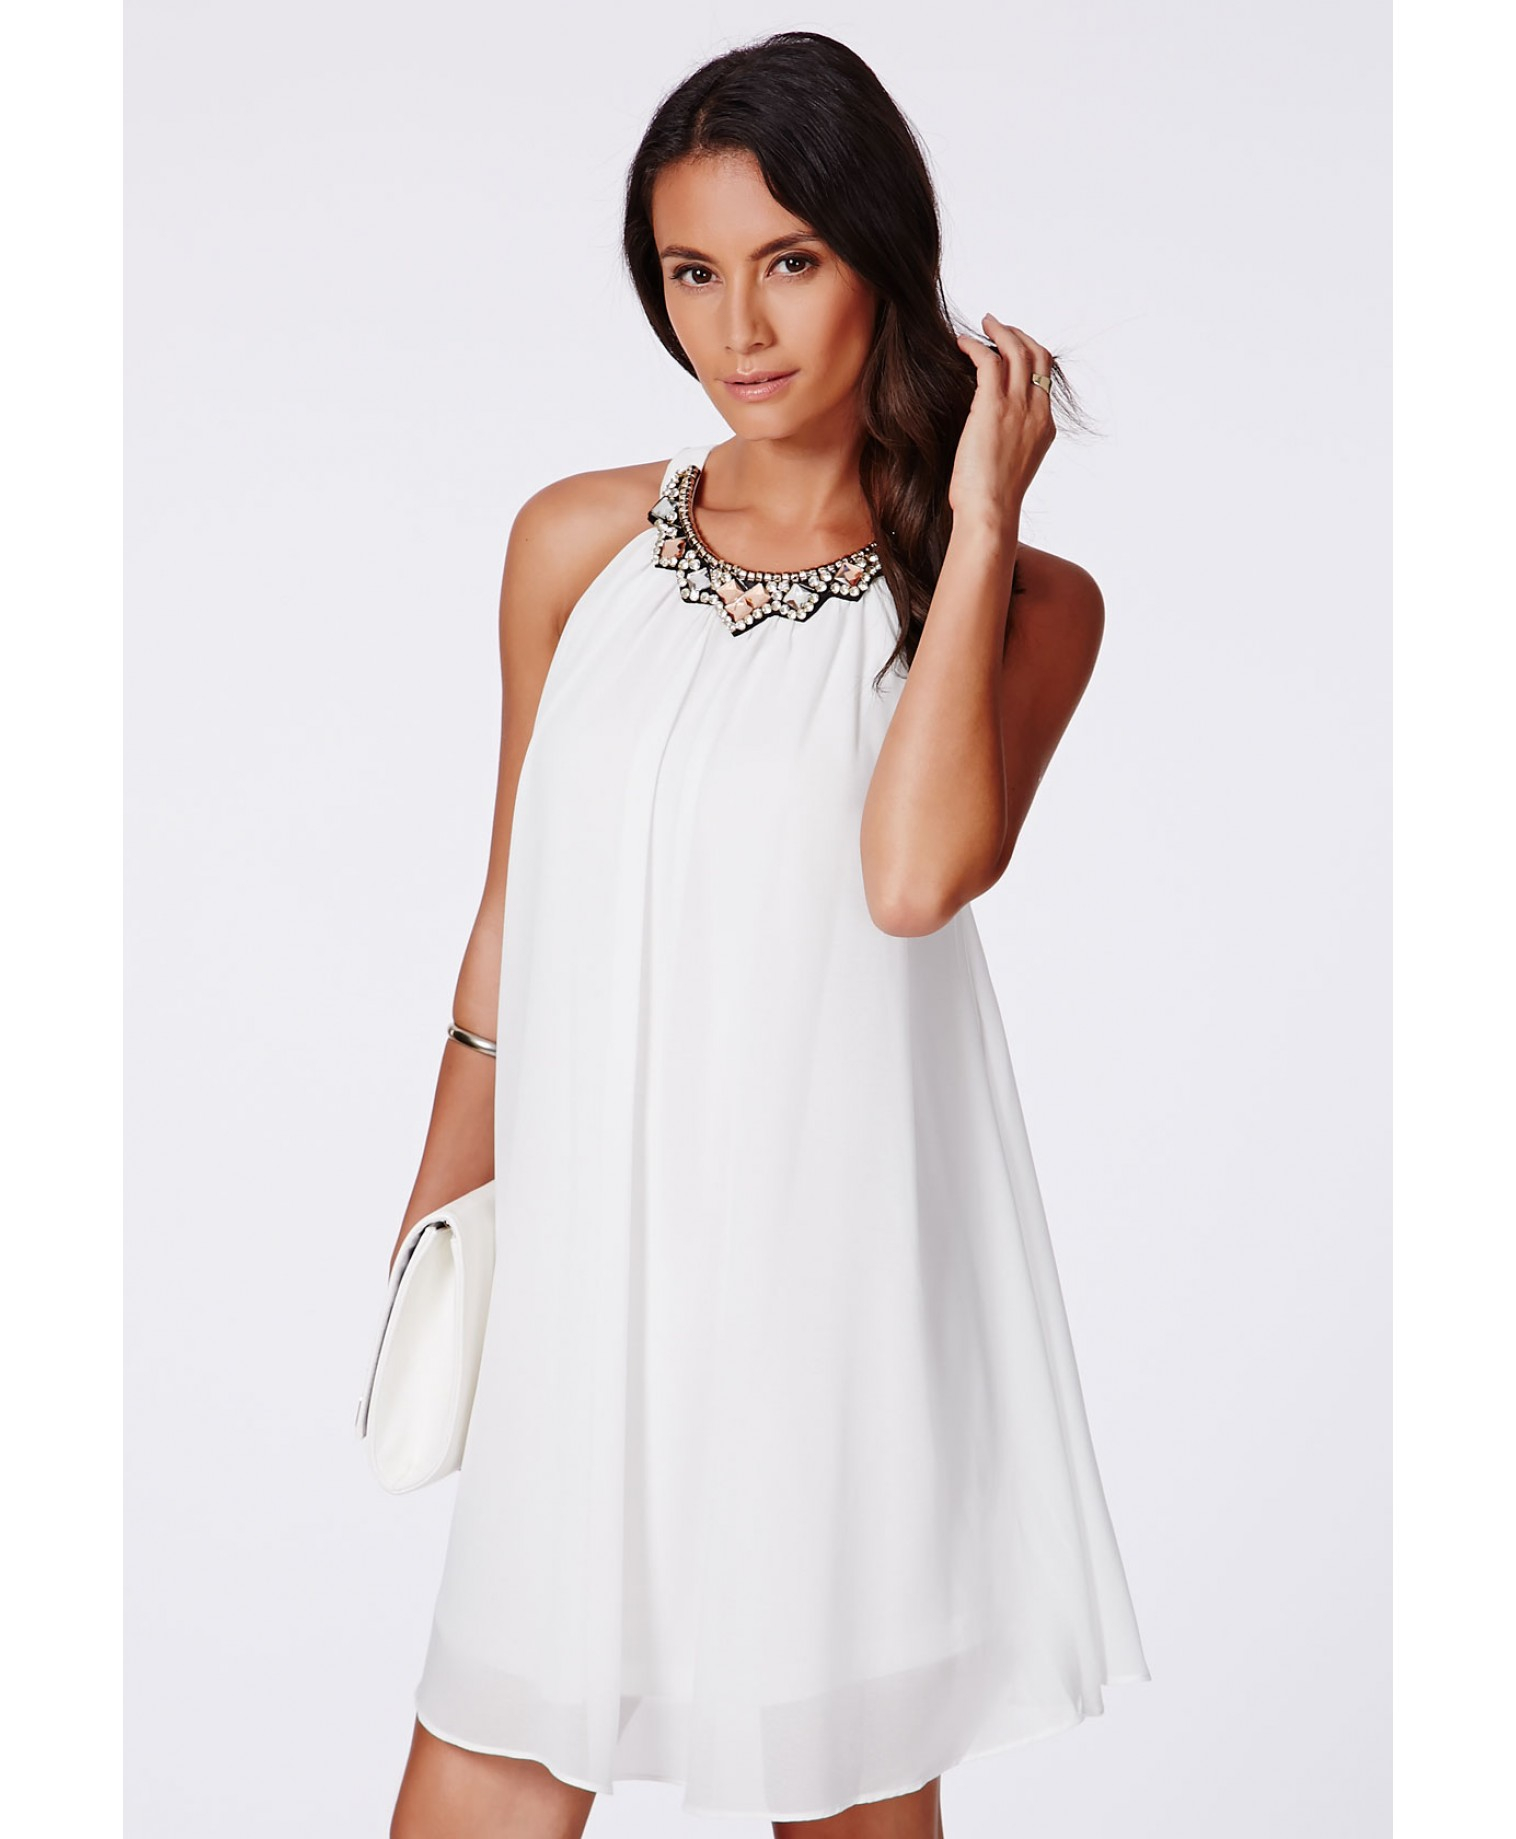 Missguided Larita Embellished Collar Swing Dress in White | Lyst